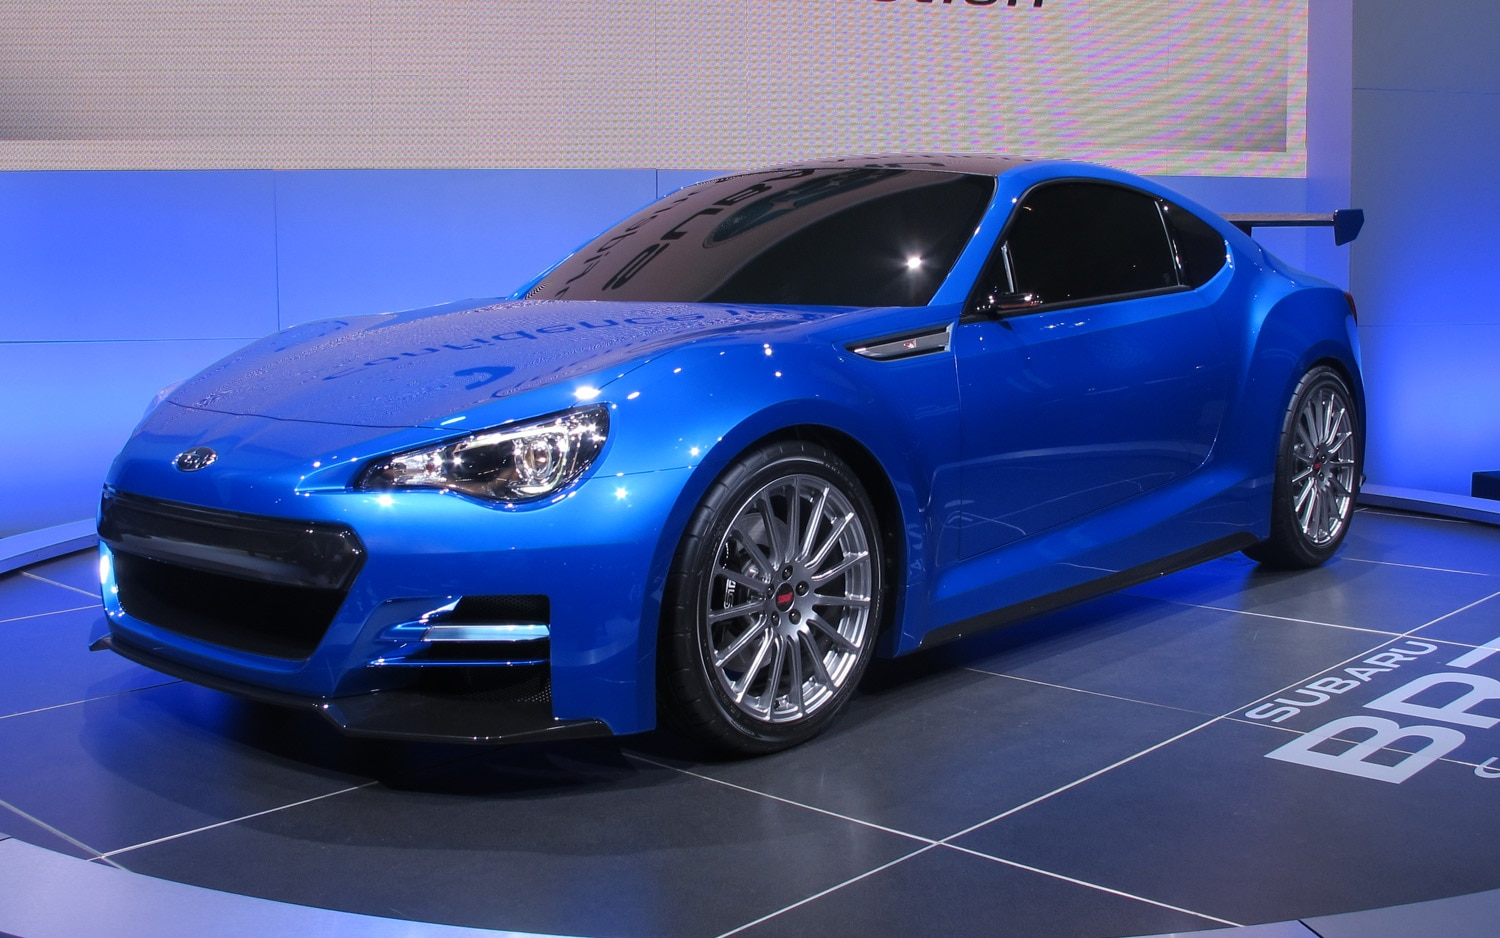 Los angeles 2011 subaru still teases us with brz concepts show more vanachro Image collections